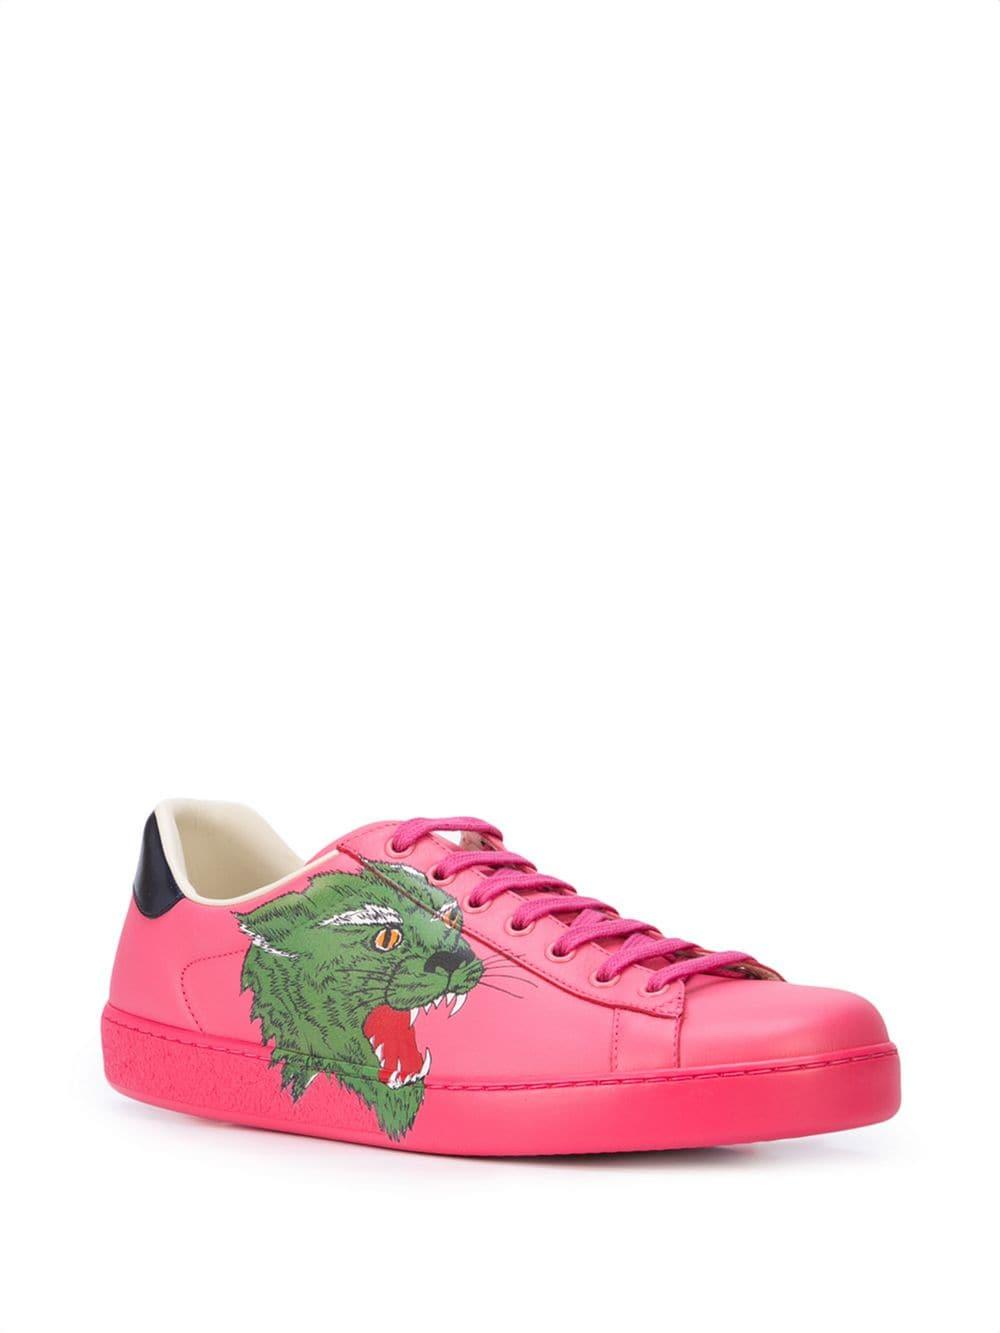 4b30e14b022 Lyst - Gucci Ace Sneaker With Panther in Pink for Men